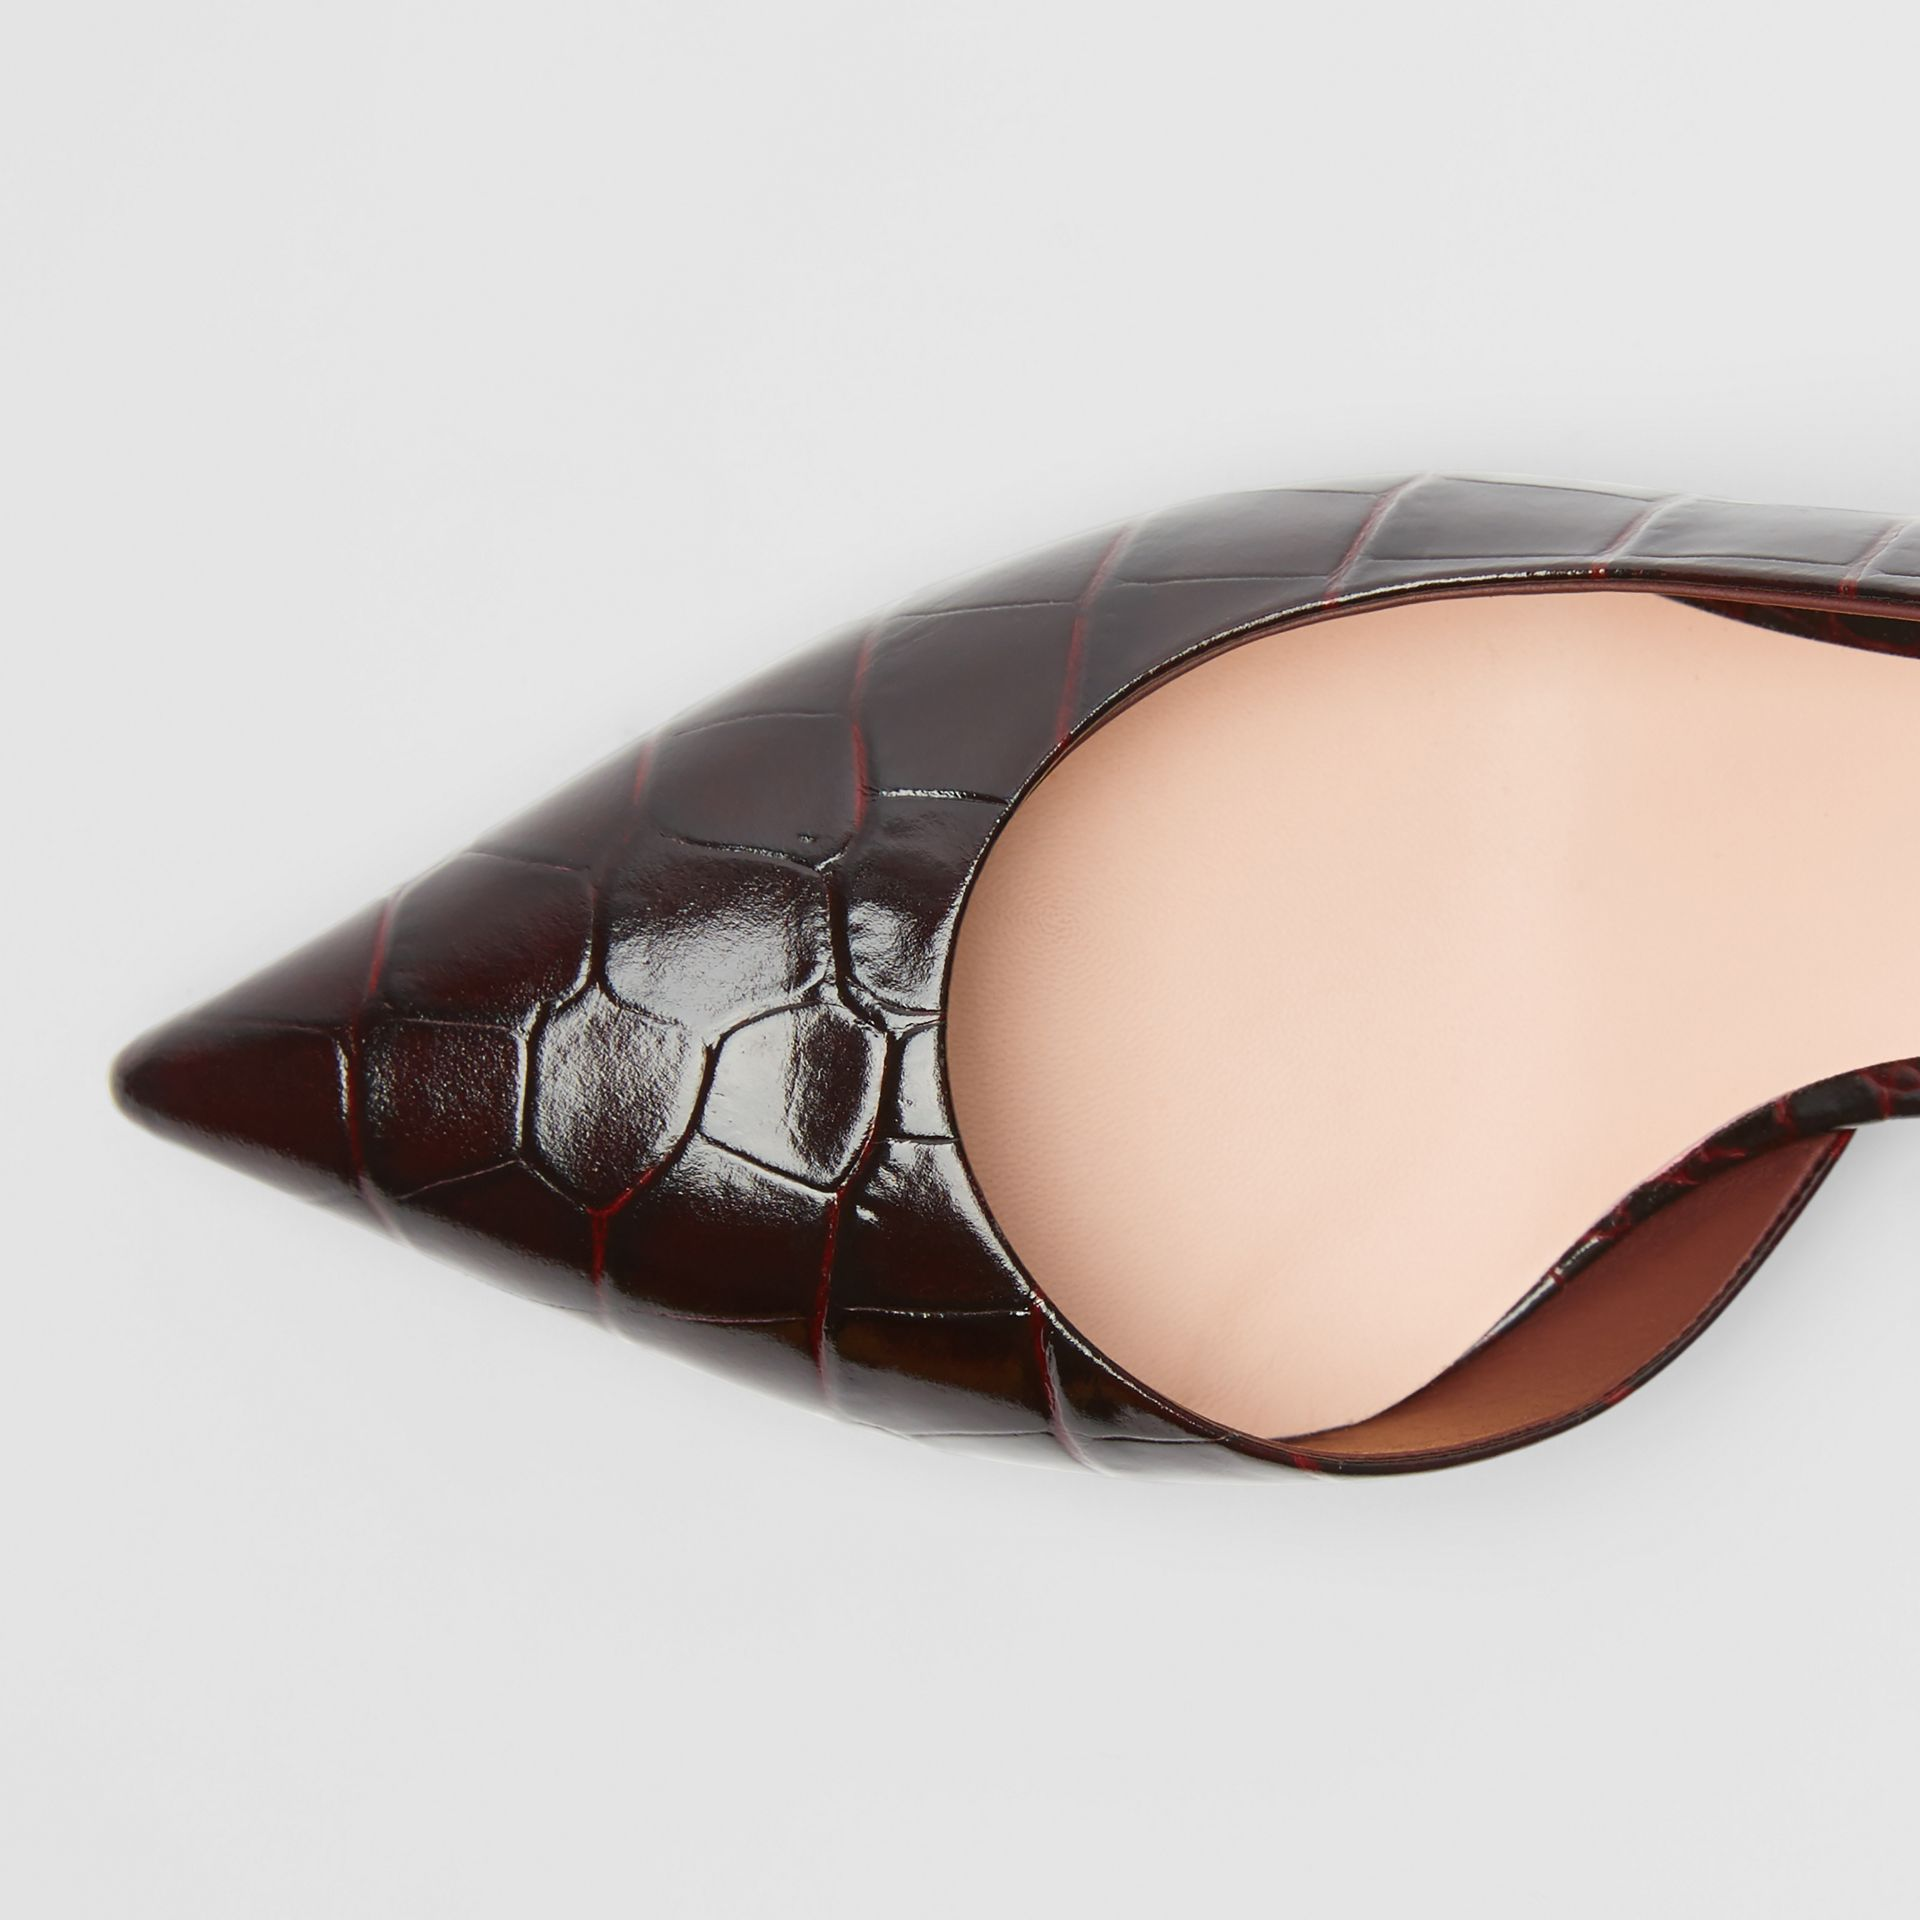 Embossed Leather Slingback Pumps in Bordeaux - Women | Burberry - gallery image 1